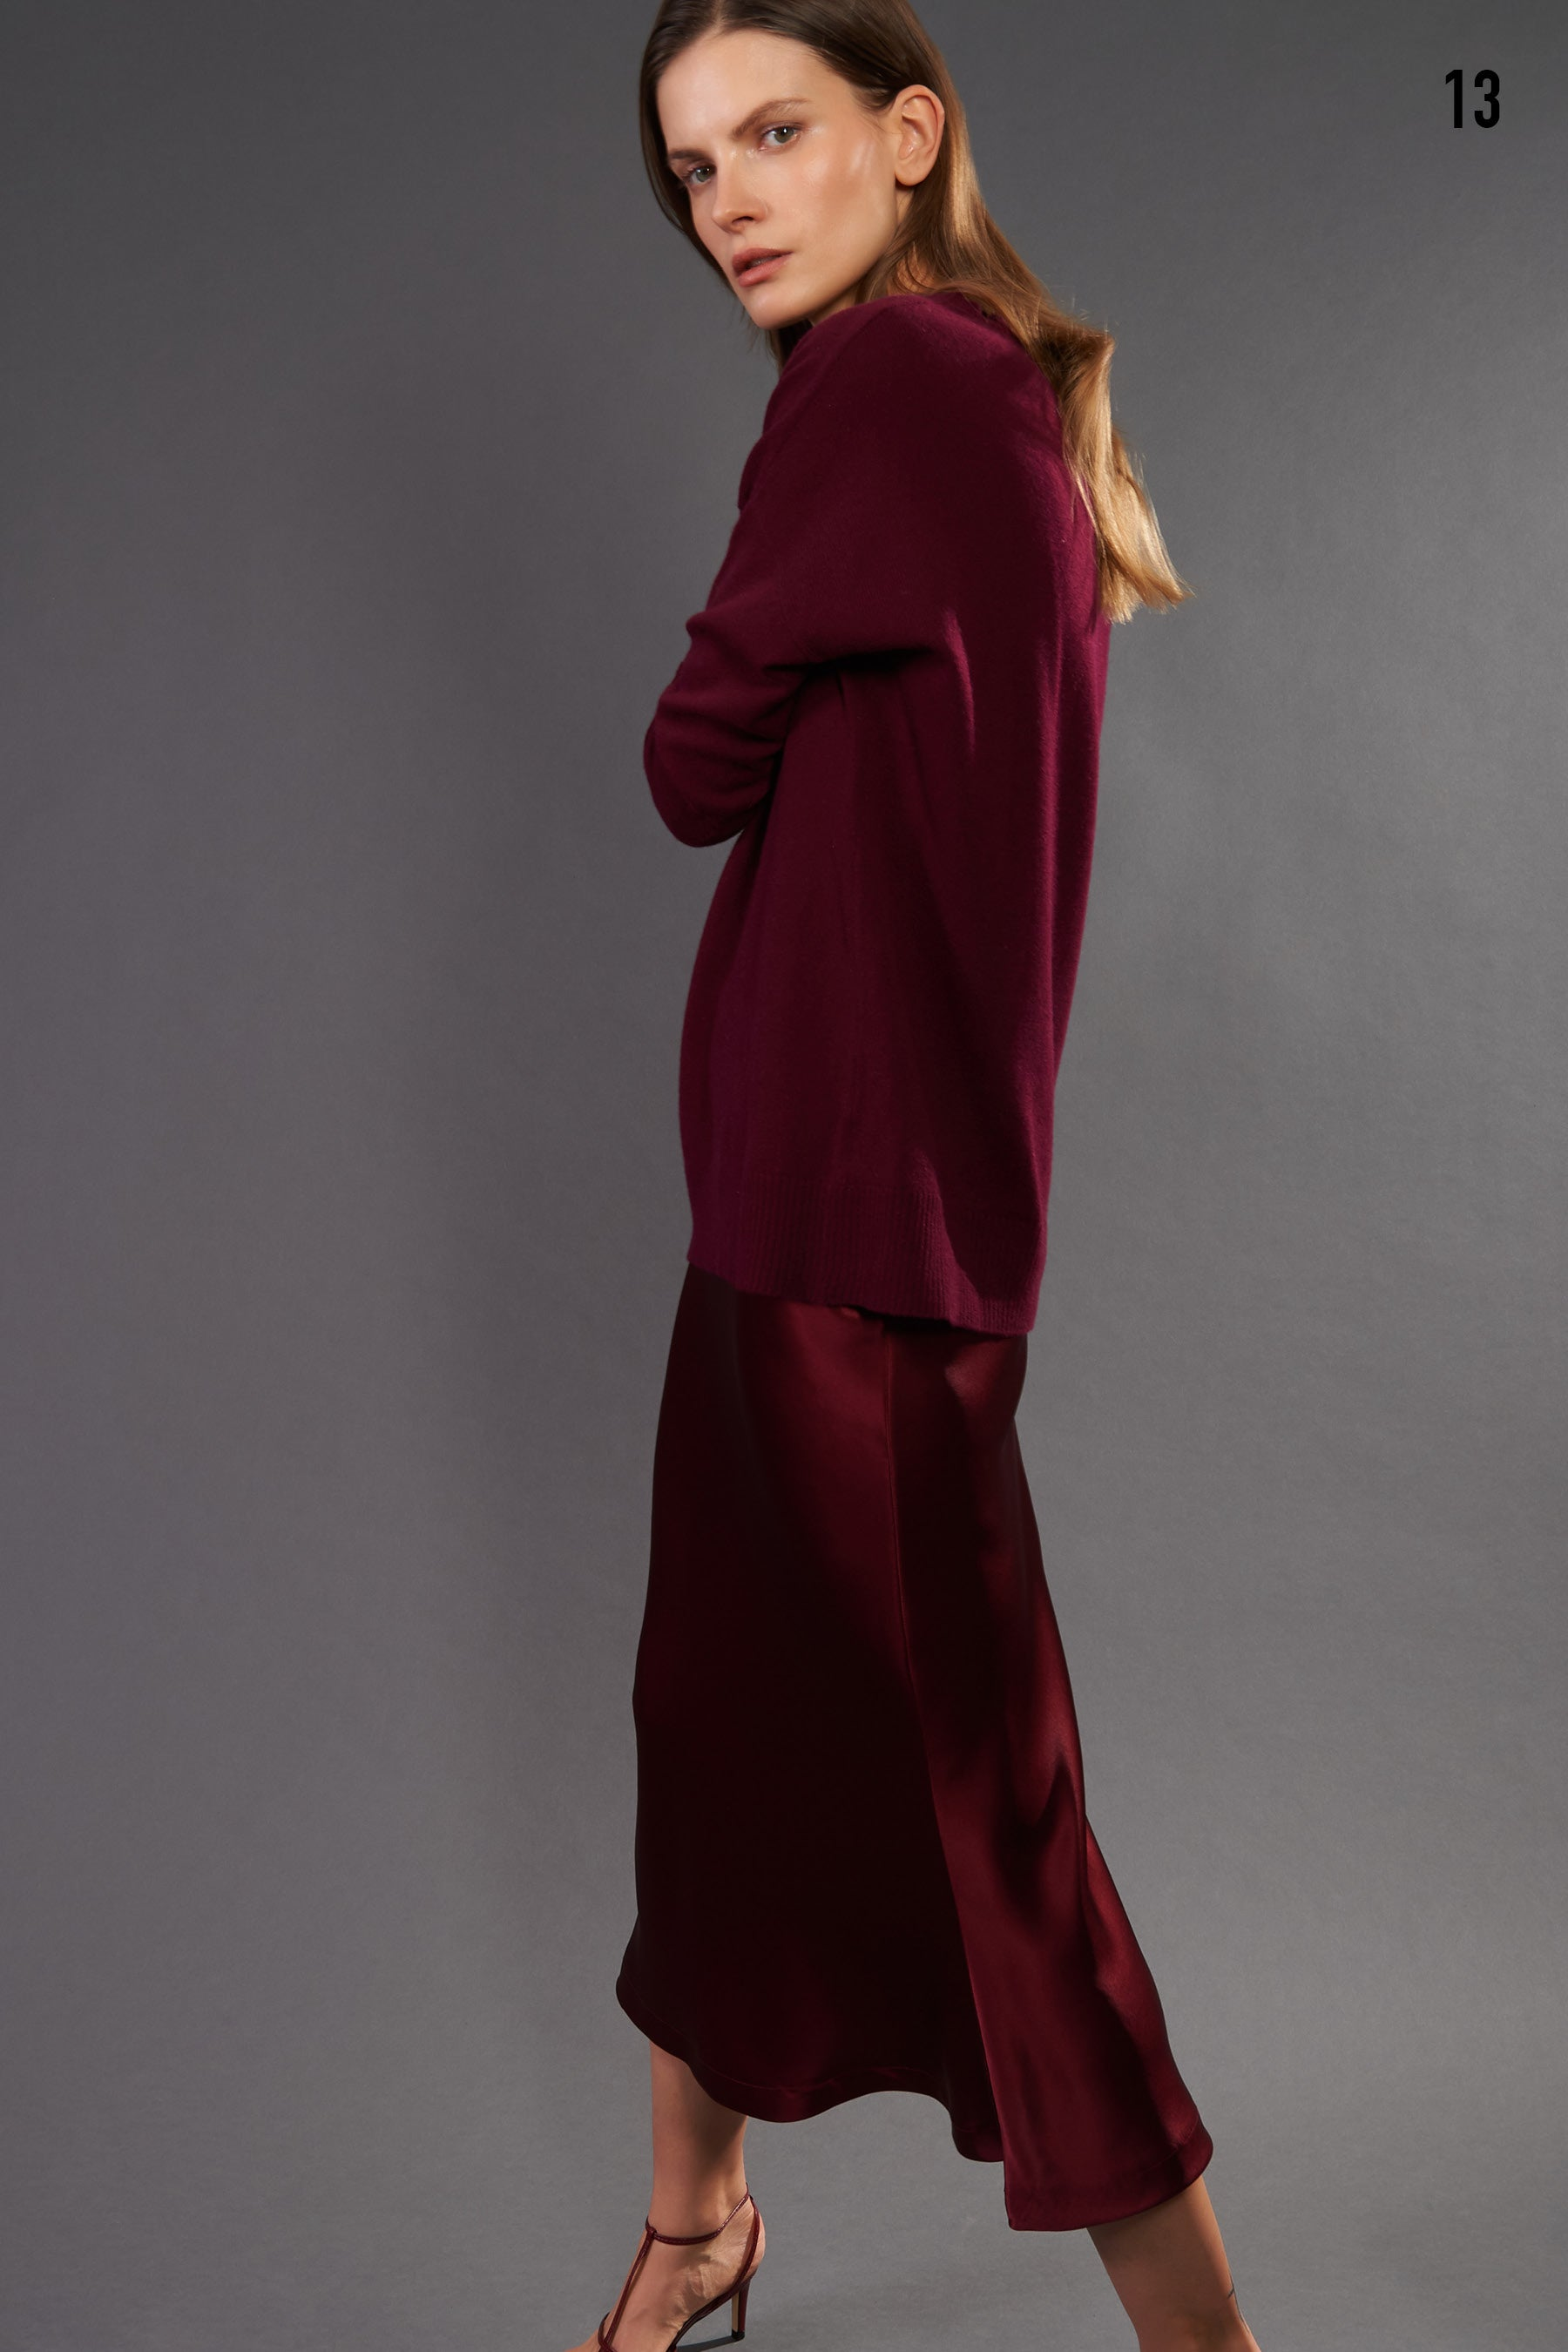 Kal Rieman Fall 2019 Lookbook Look 13